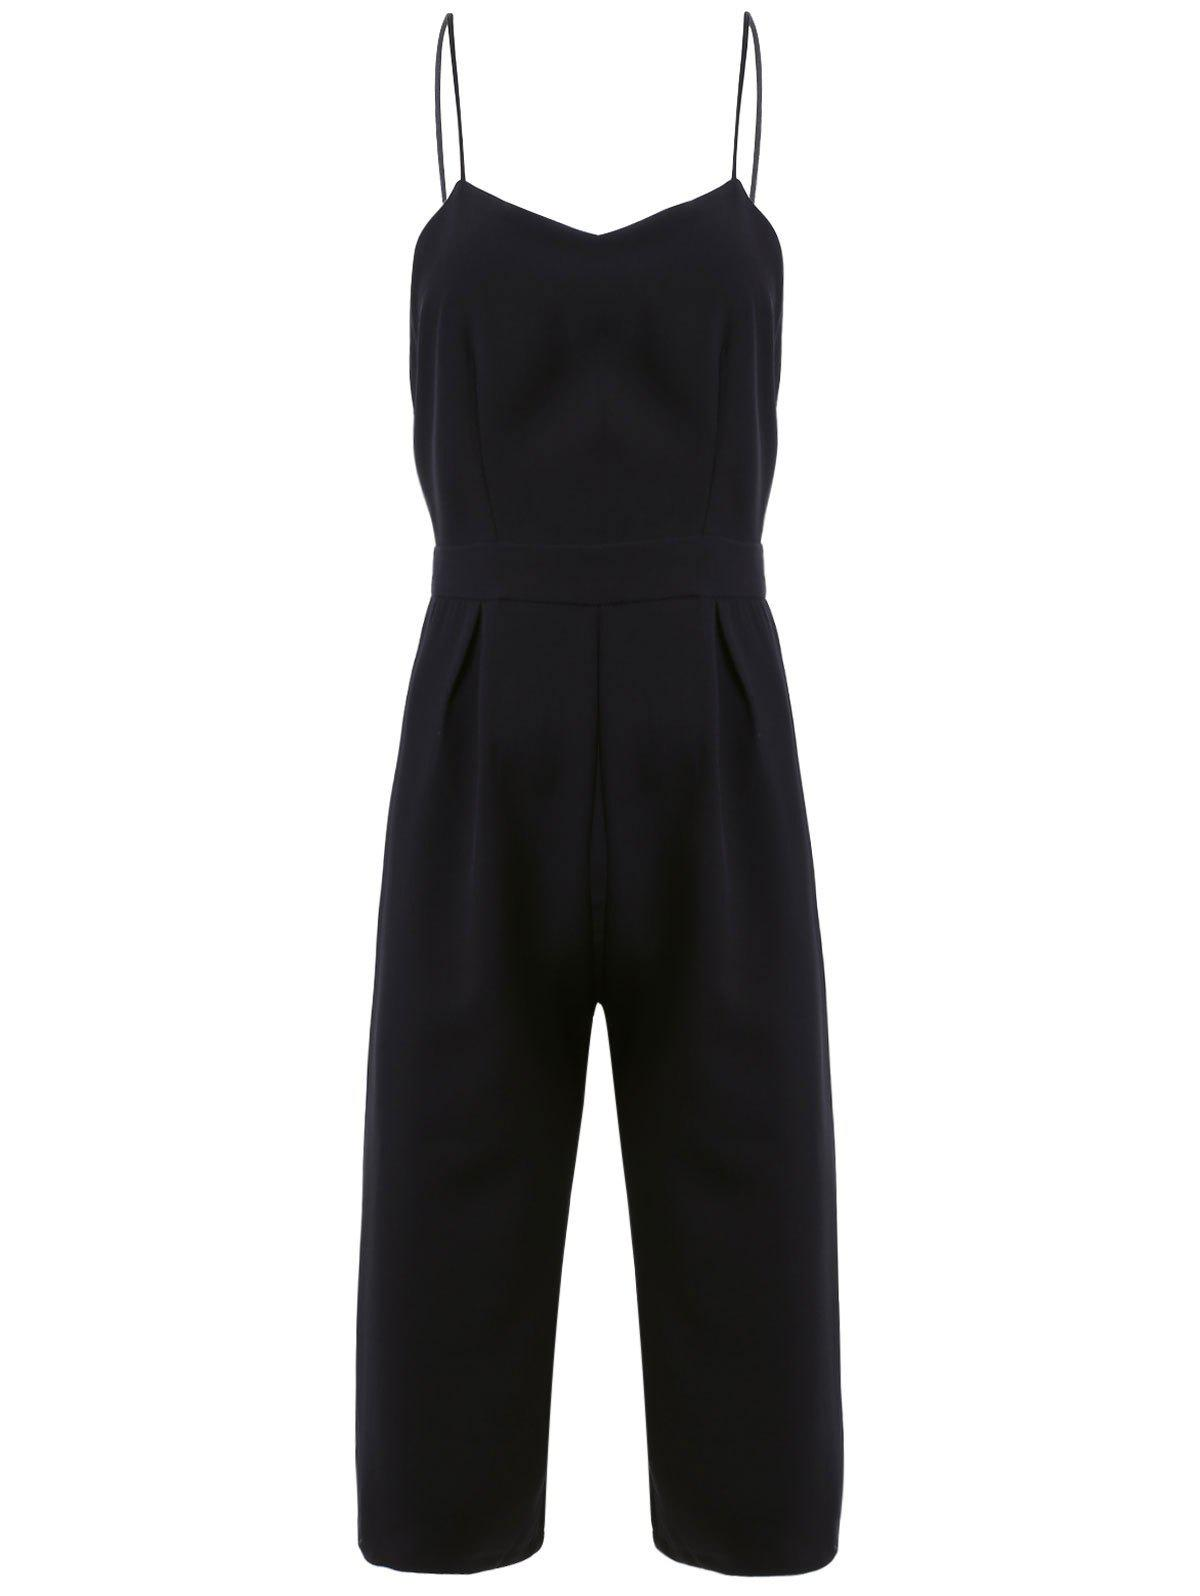 Simple Women's Spaghetti Strap Backless Jumpsuit - BLACK M